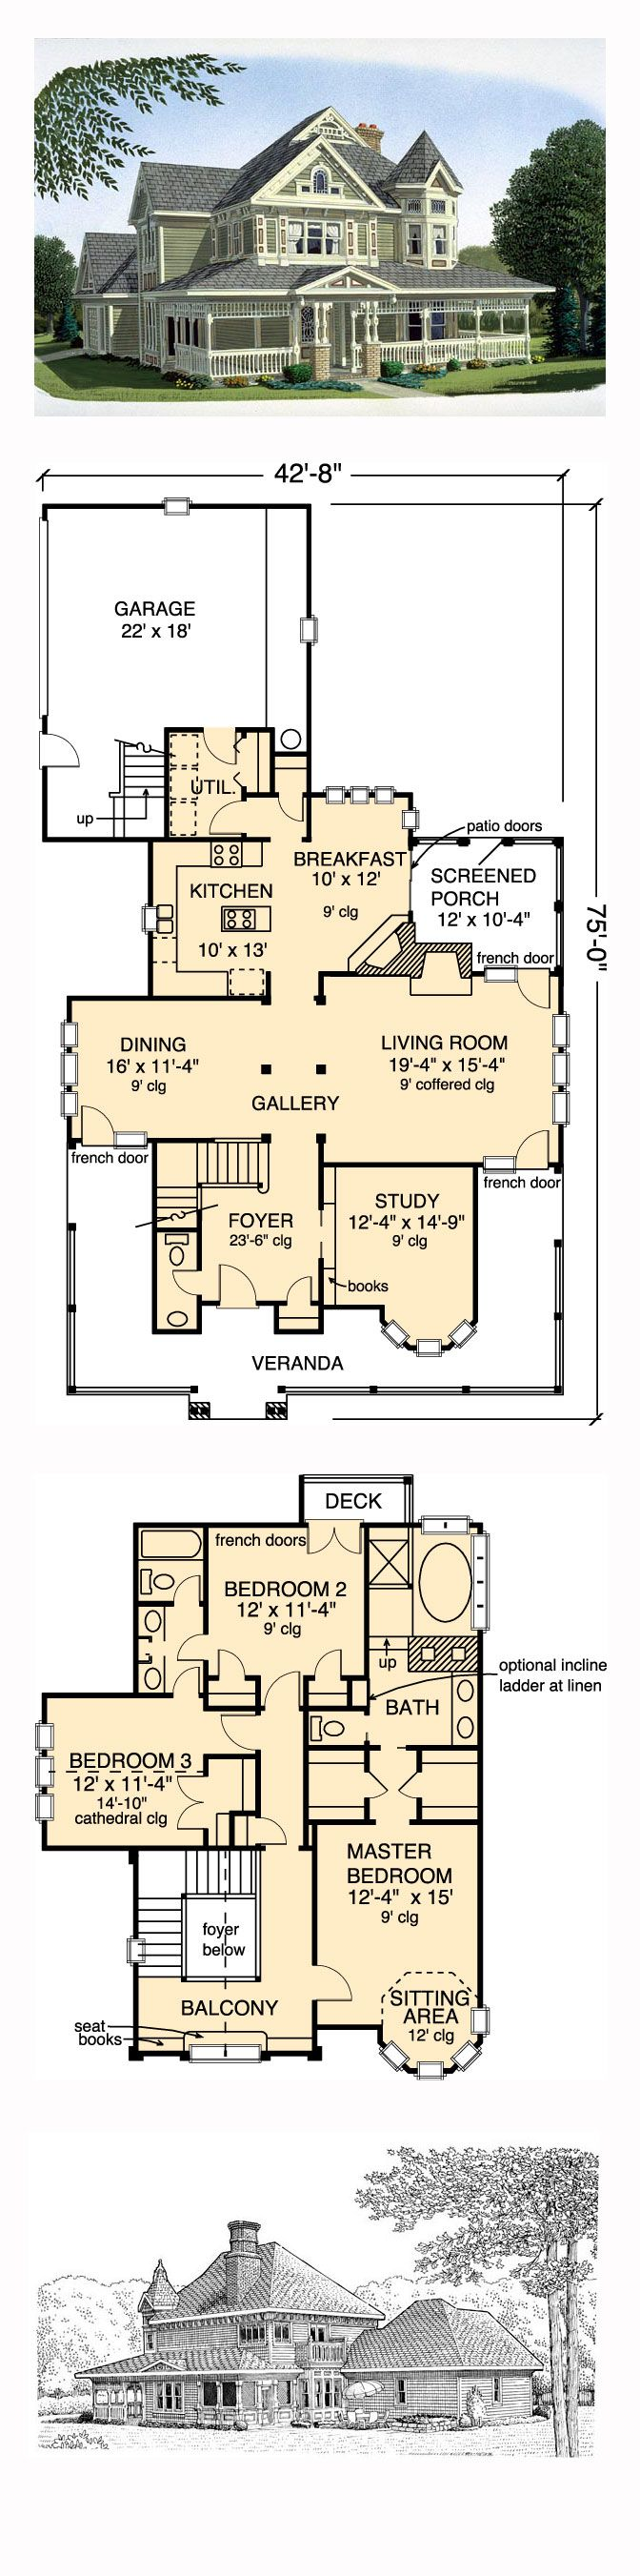 Victorian house plan total living area sq ft